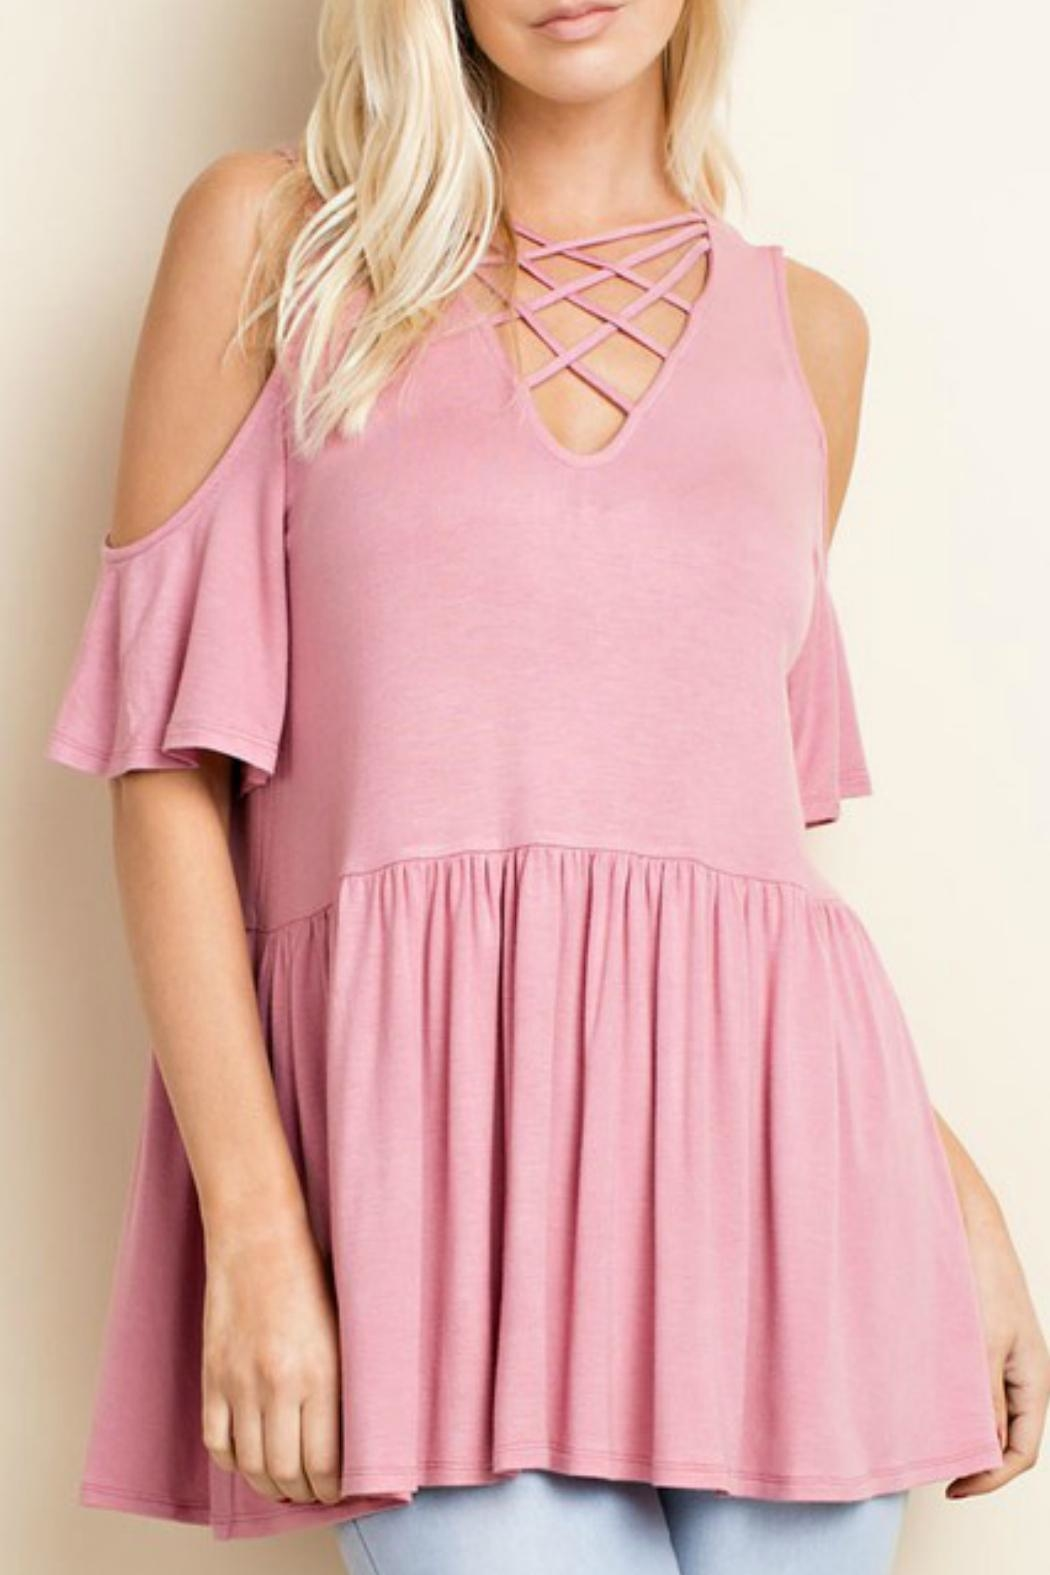 143 Story Jersey Cold Shoulder Top - Main Image